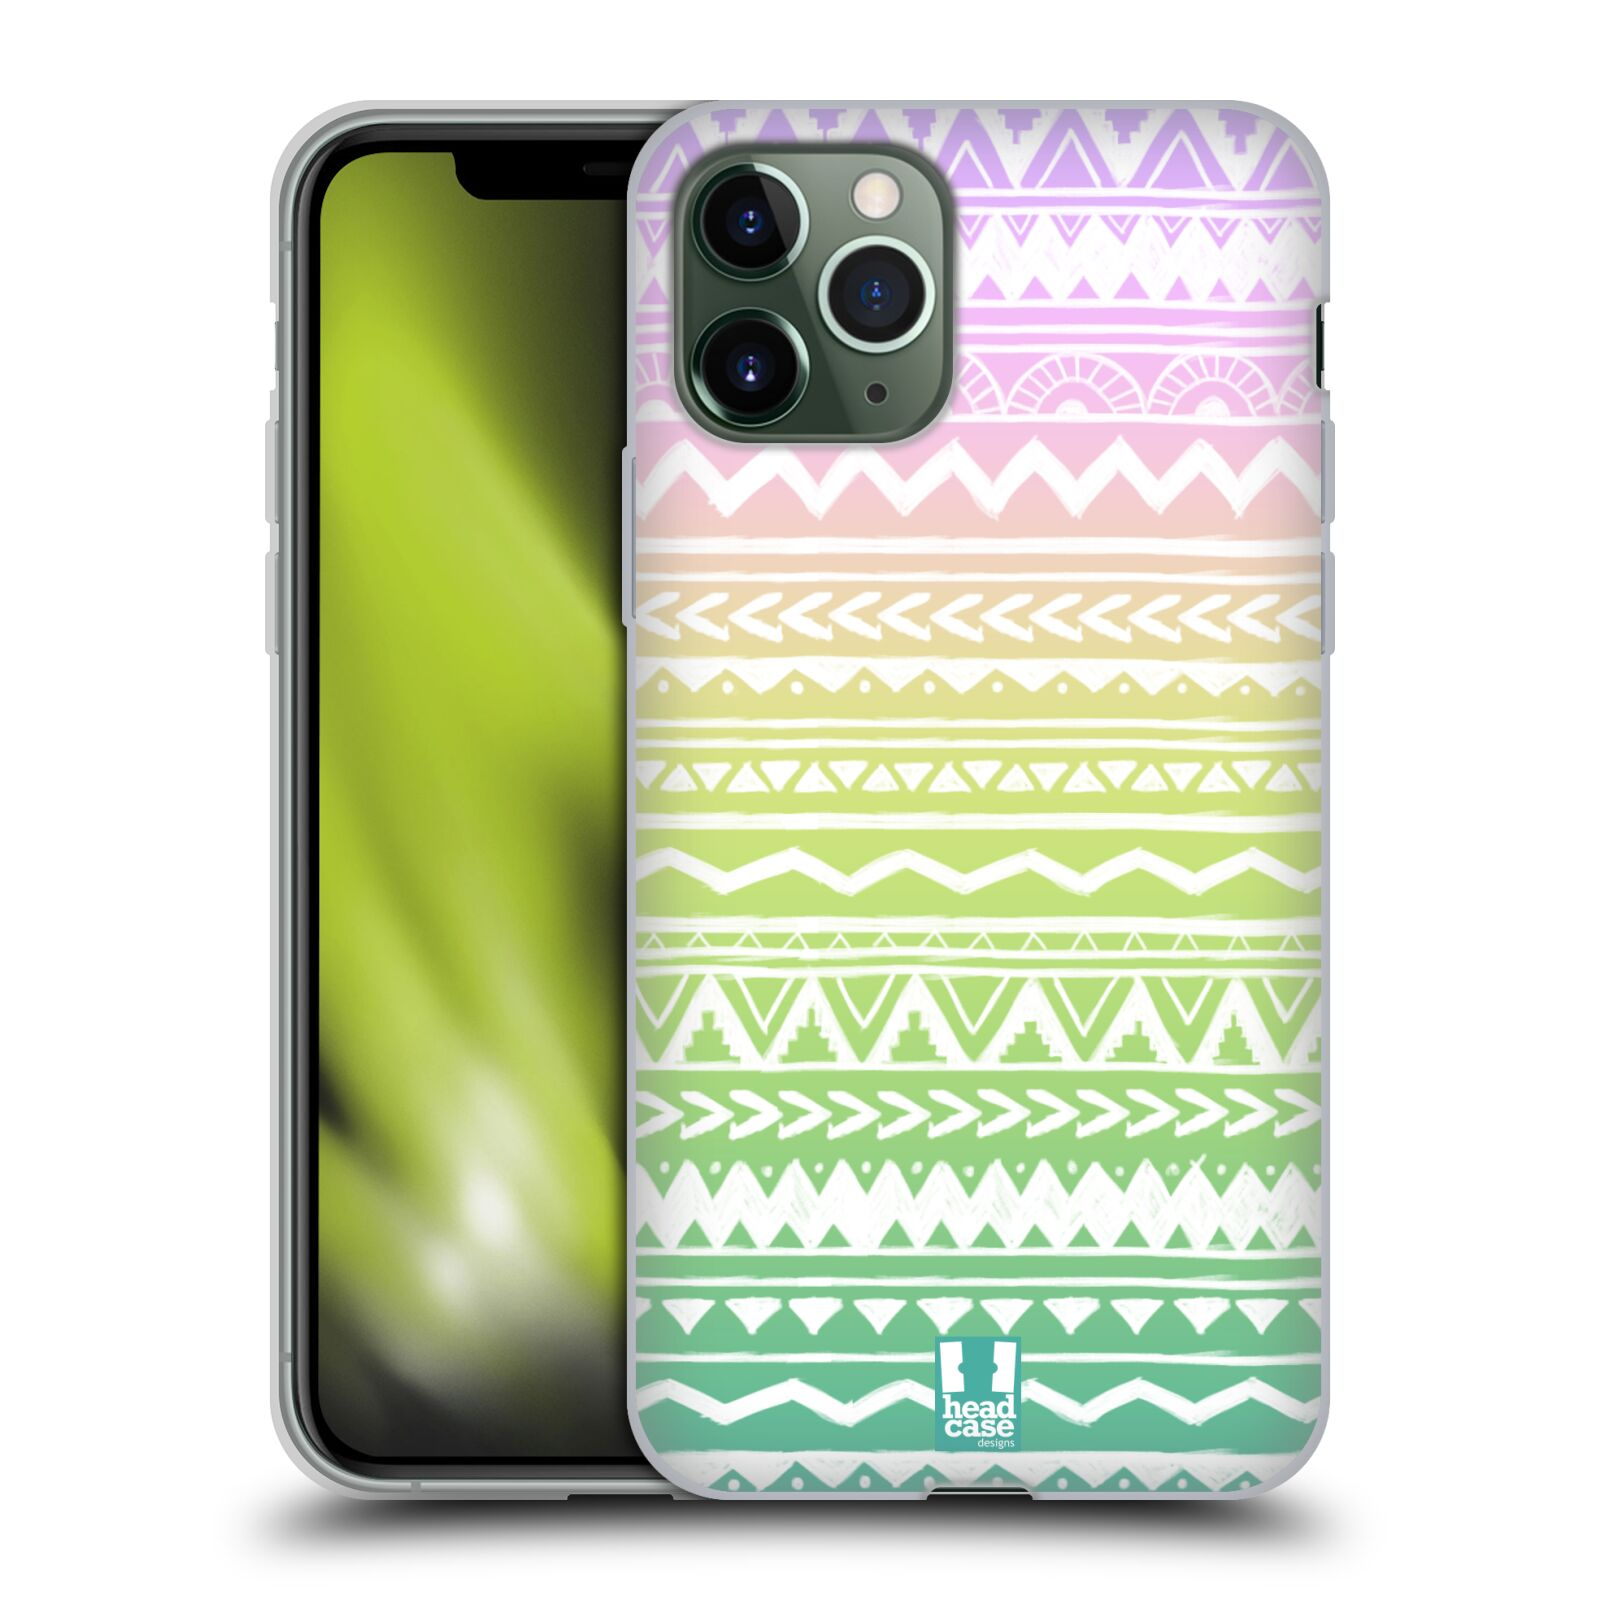 ebay krytu na iphone 6s plus | Silikonové pouzdro na mobil Apple iPhone 11 Pro - Head Case - MIX AZTEC DRAWN